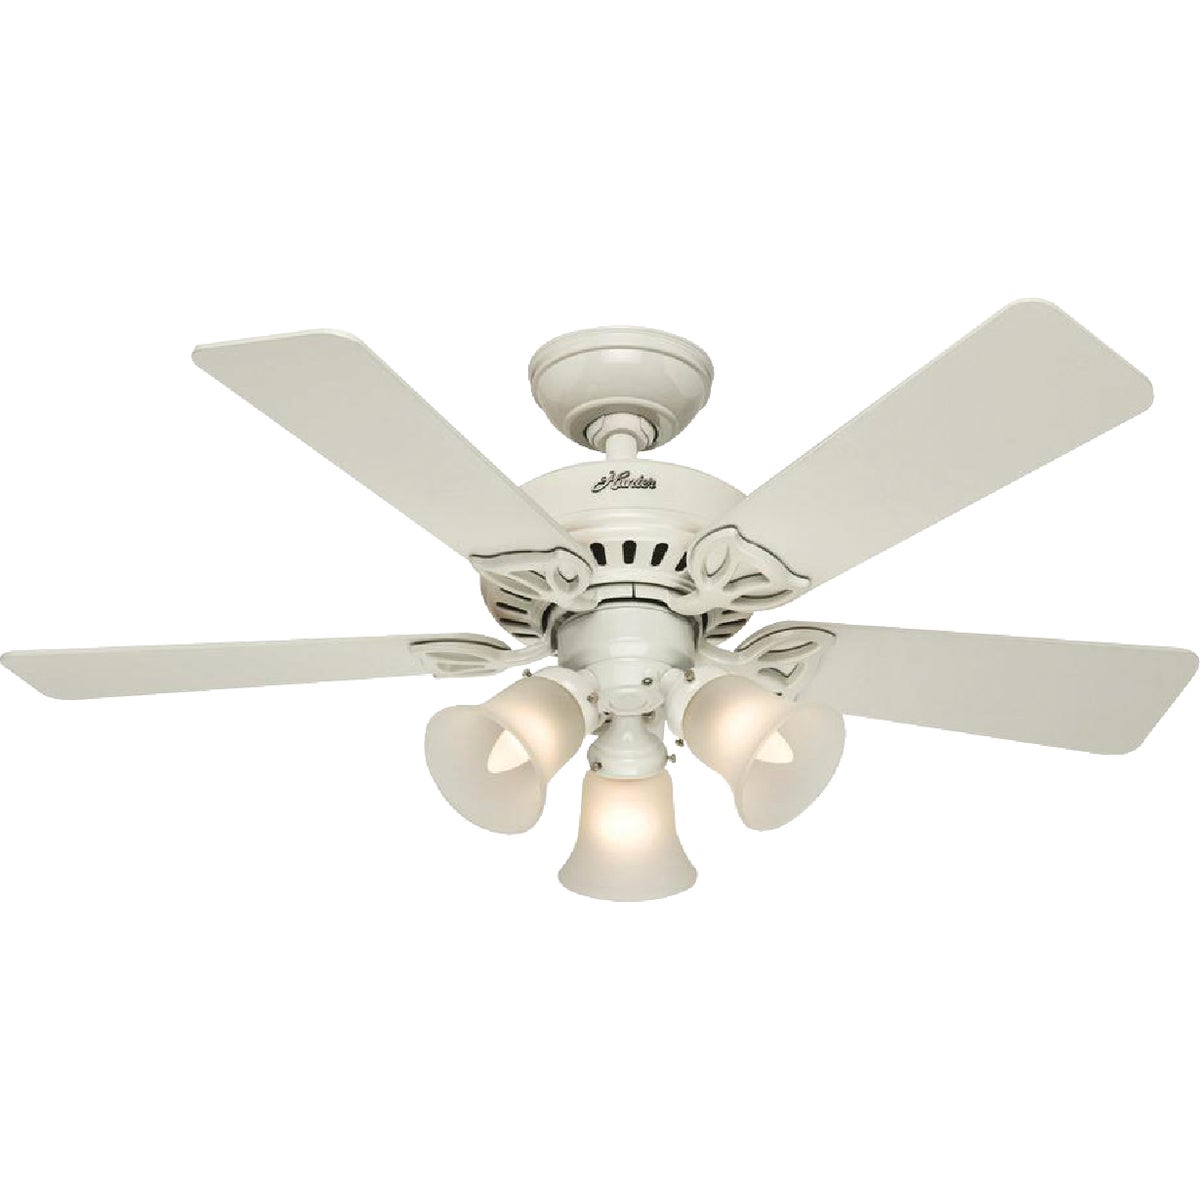 "42"" WHT CEIL FAN W/LIGHT - 53081 by Hunter Fan Co"